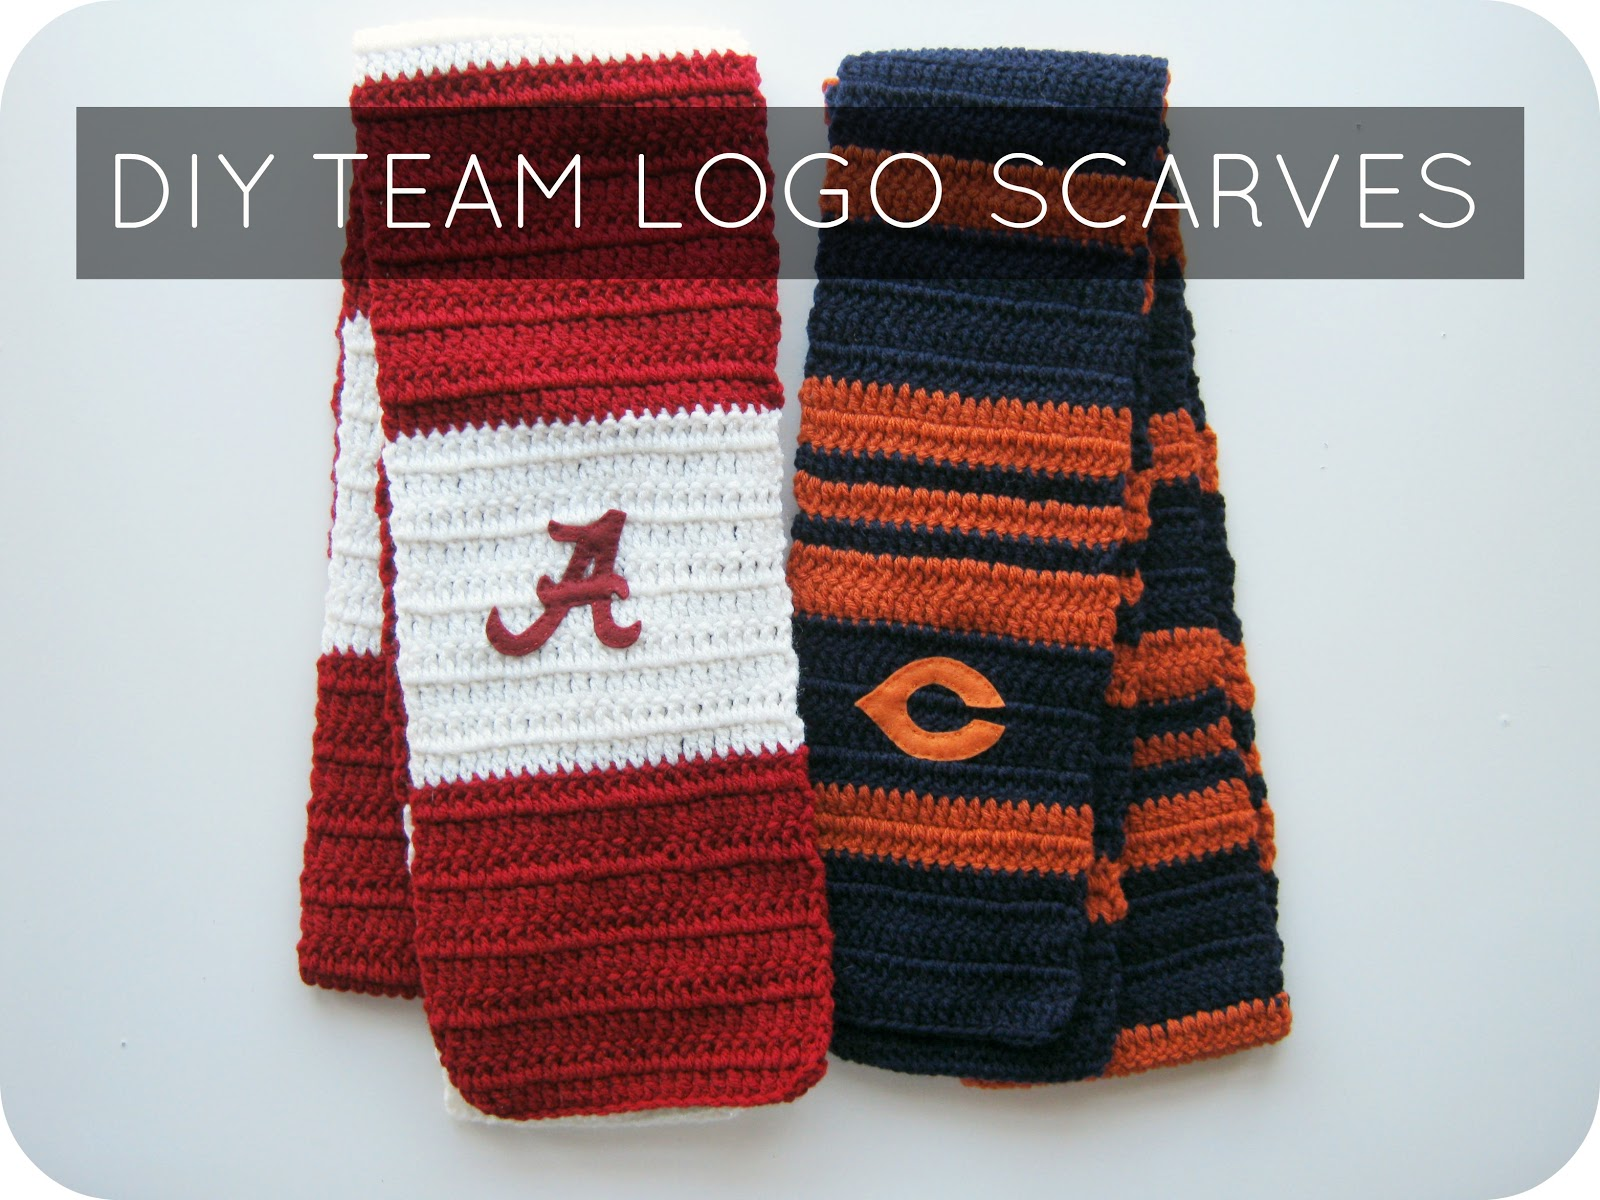 Knitting Or Crocheting Harder : Free crochet patterns to show your team spirit stitch